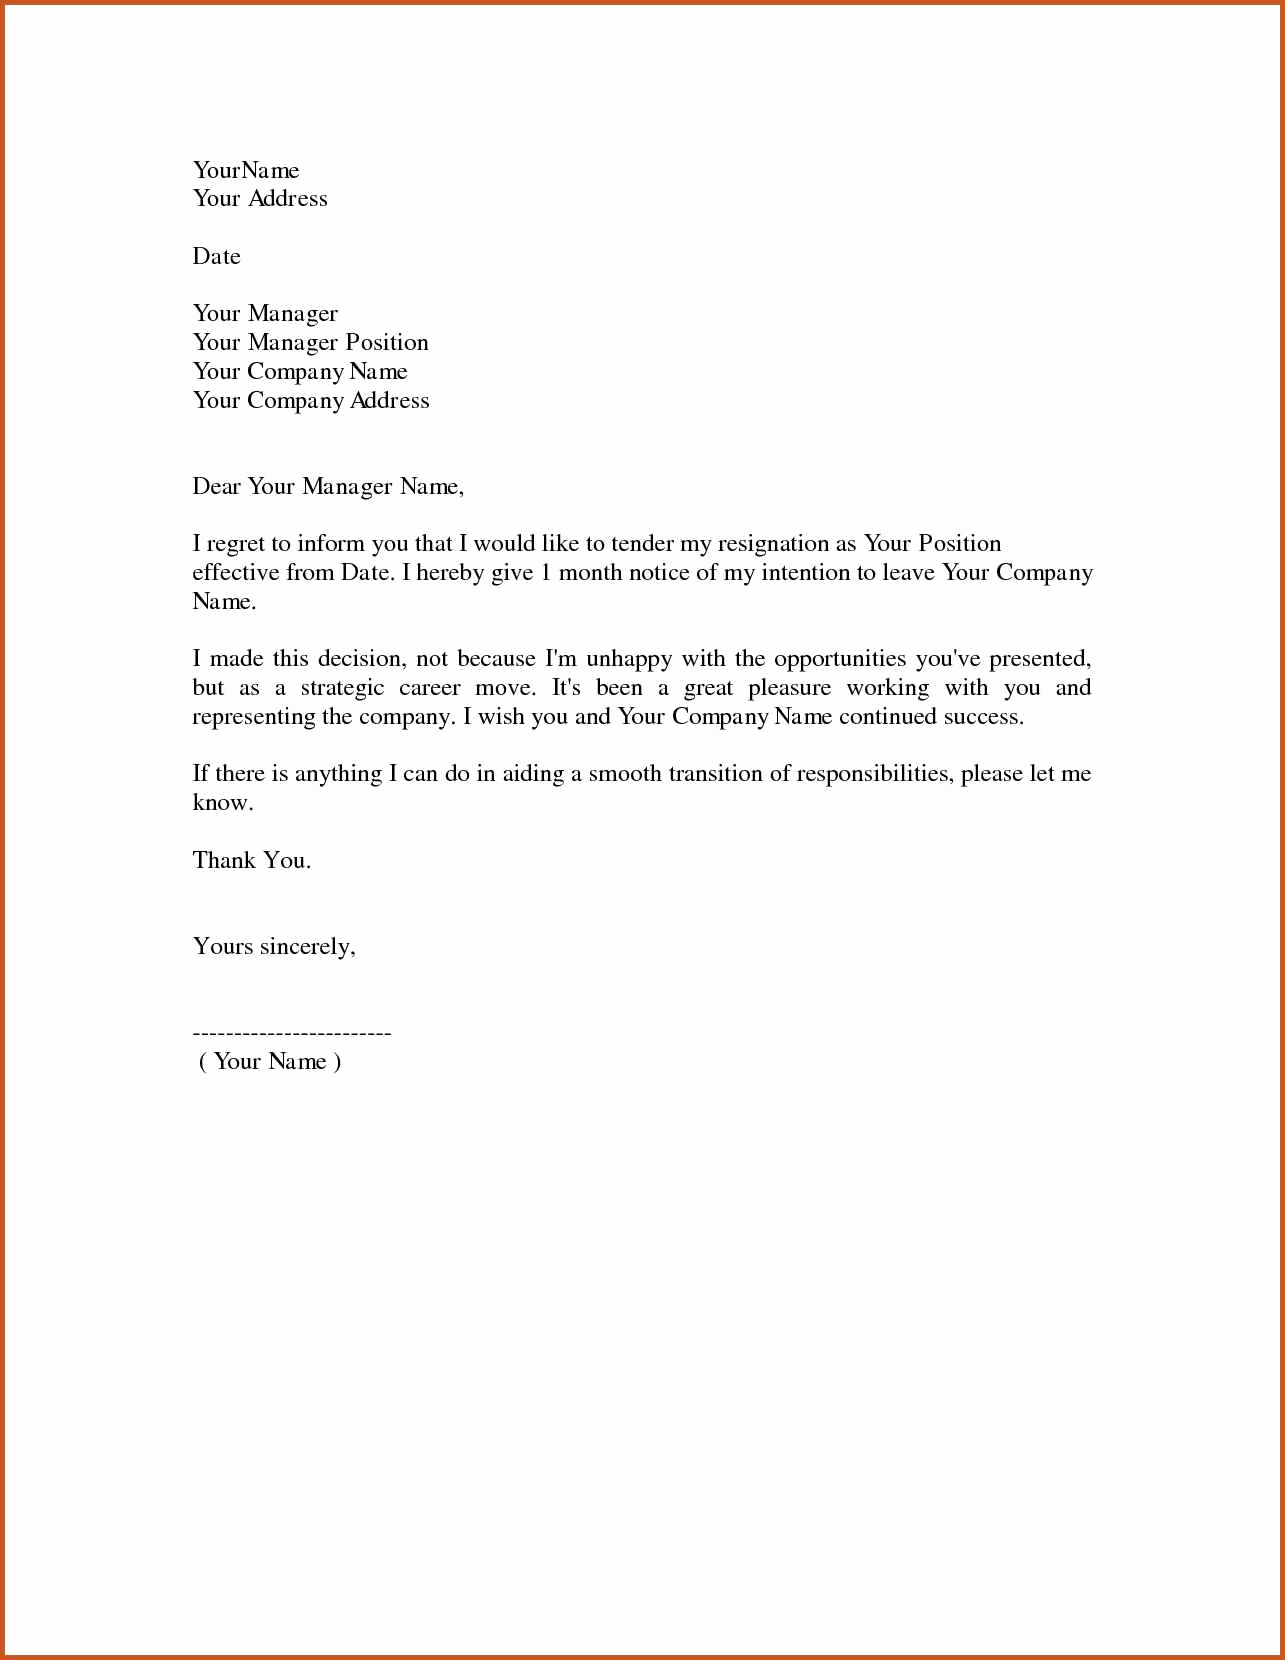 Retirement Letter to Employer Best Of Retirement Letter to Employer Template Samples